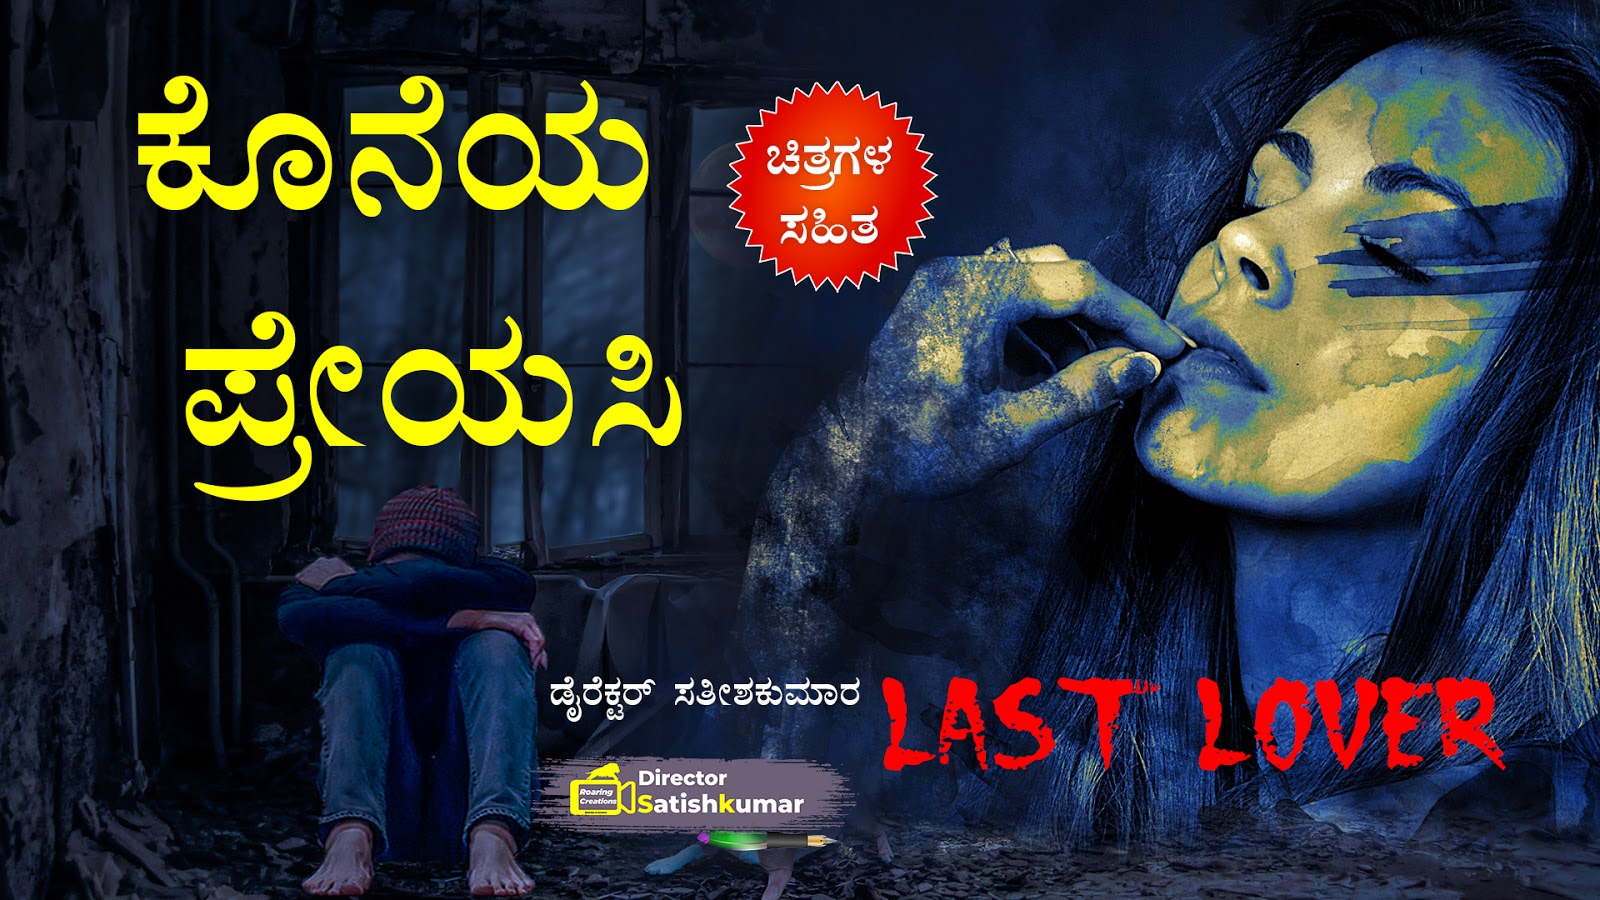 ಕೊನೆಯ ಪ್ರೇಯಸಿ - Last Lover - One Sad Love Story in Kannada